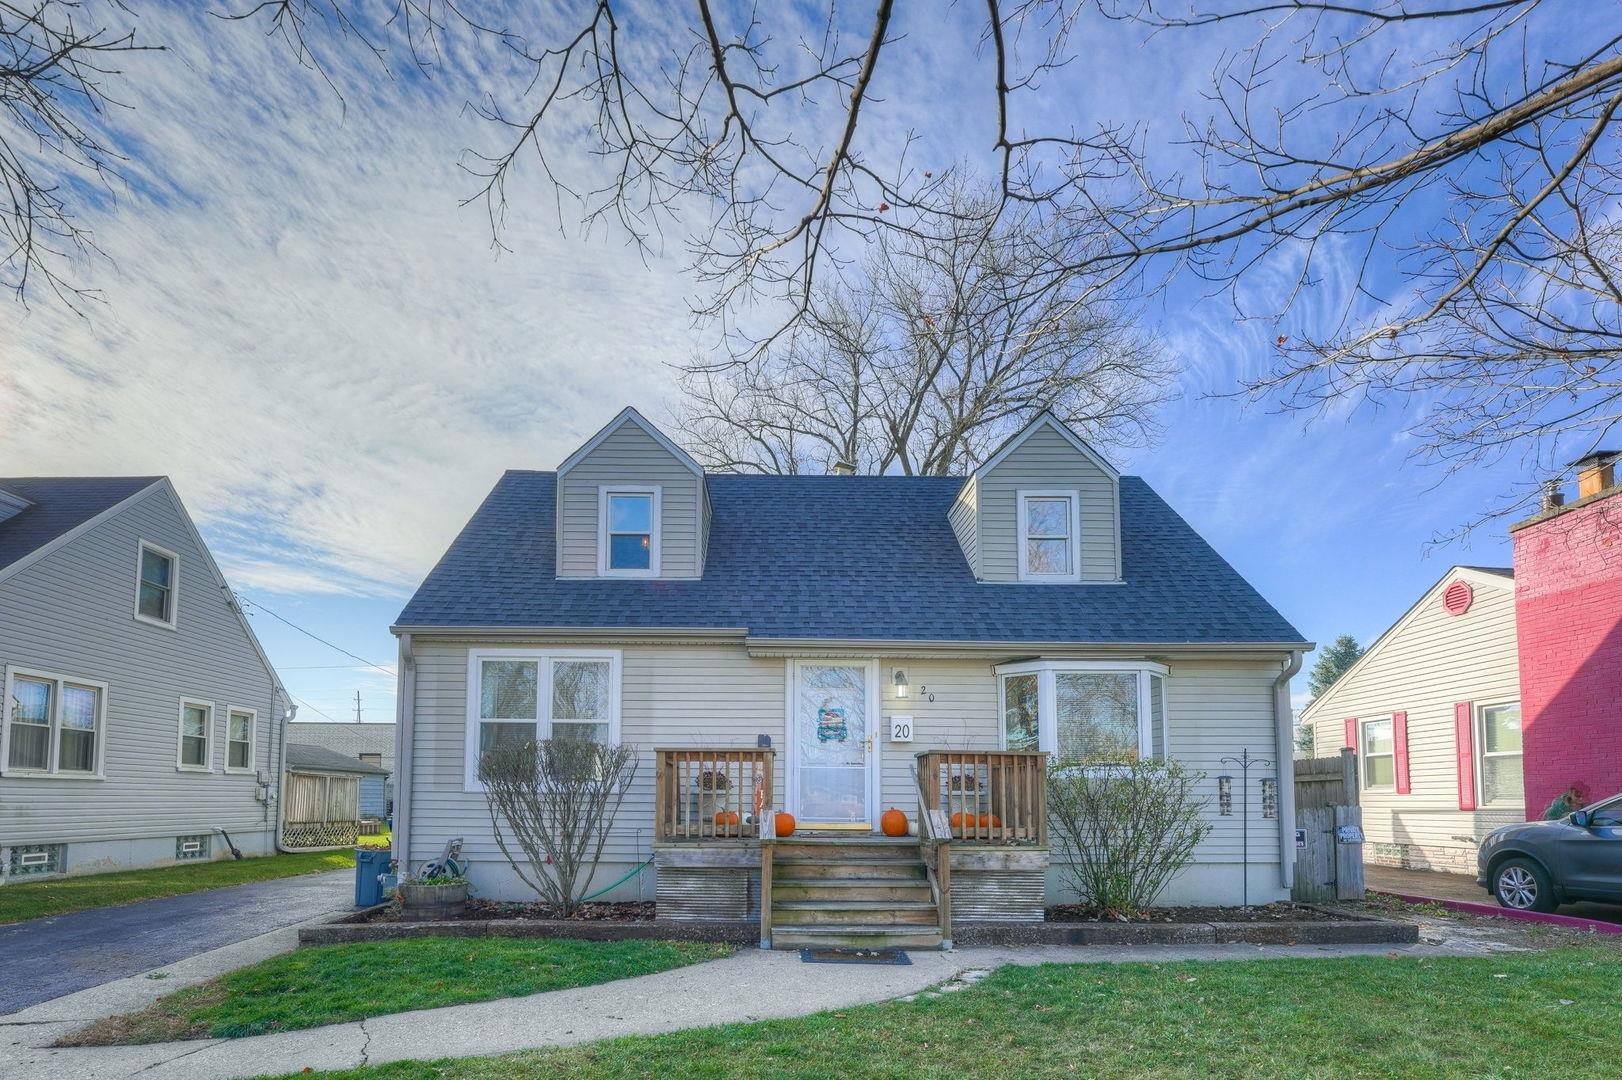 20 S Iowa Avenue, Addison, IL 60101 - #: 10932570